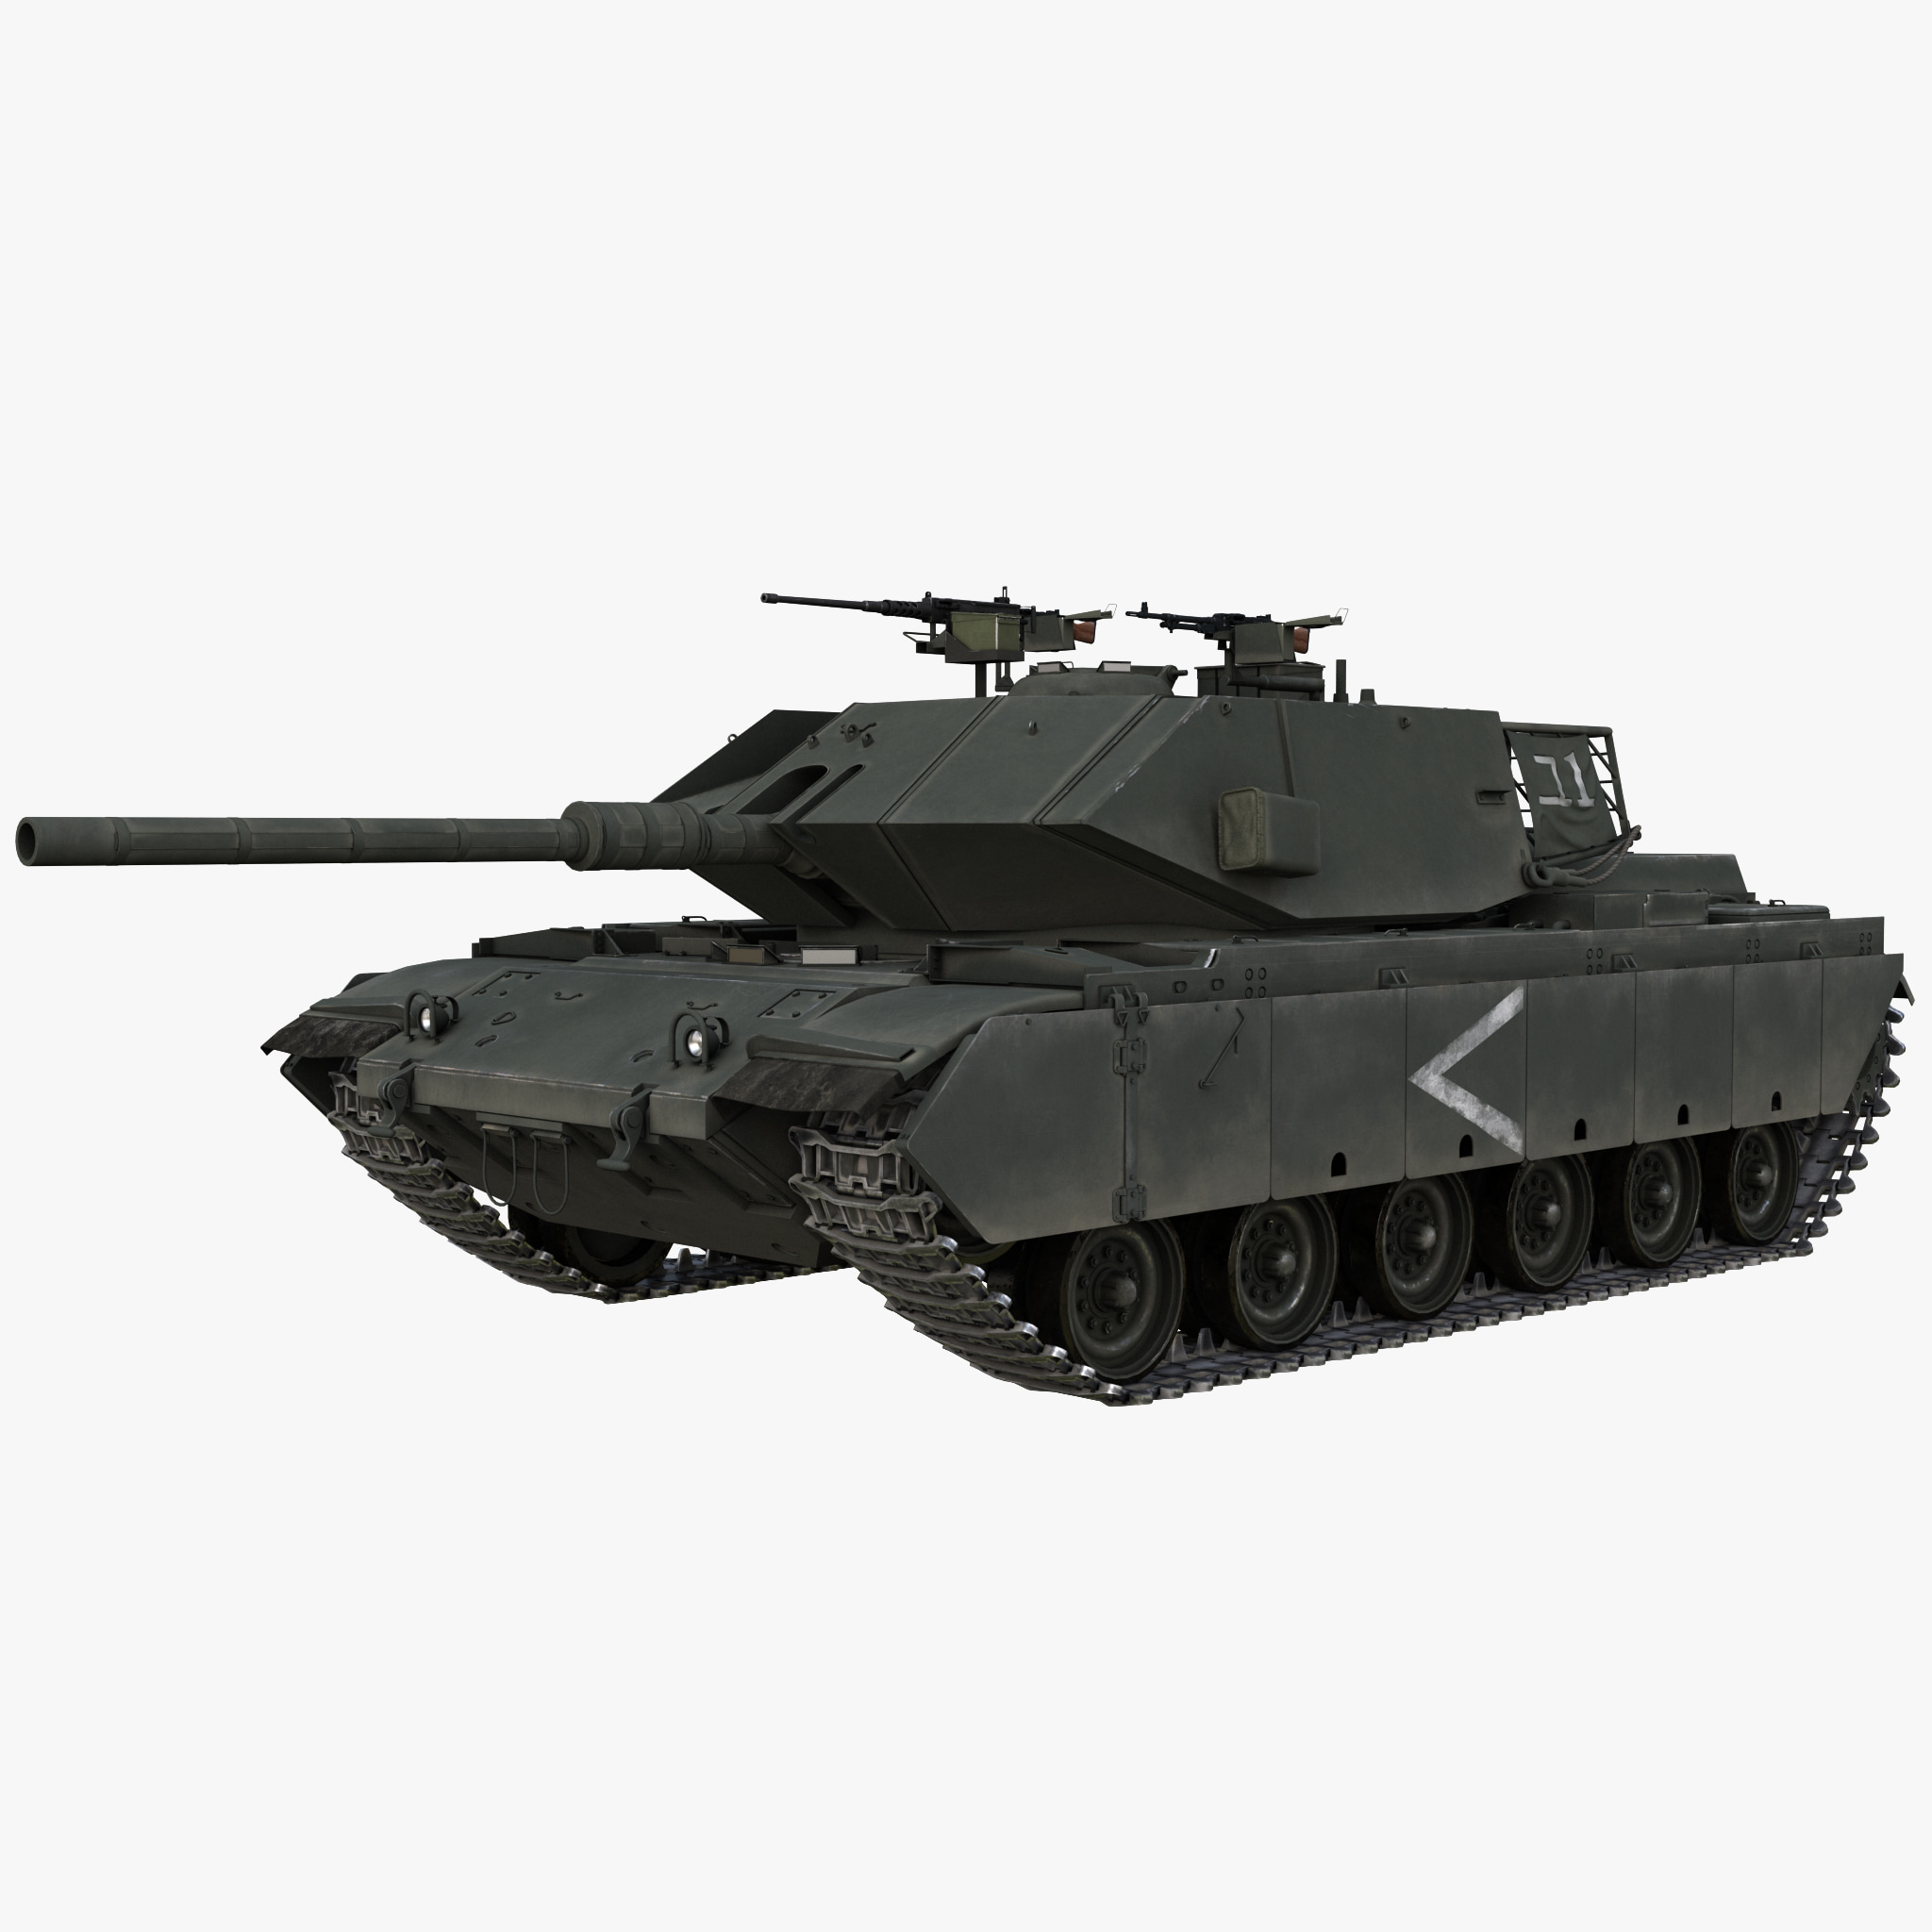 Magach 7 Israel Main Battle Tank_1.jpg